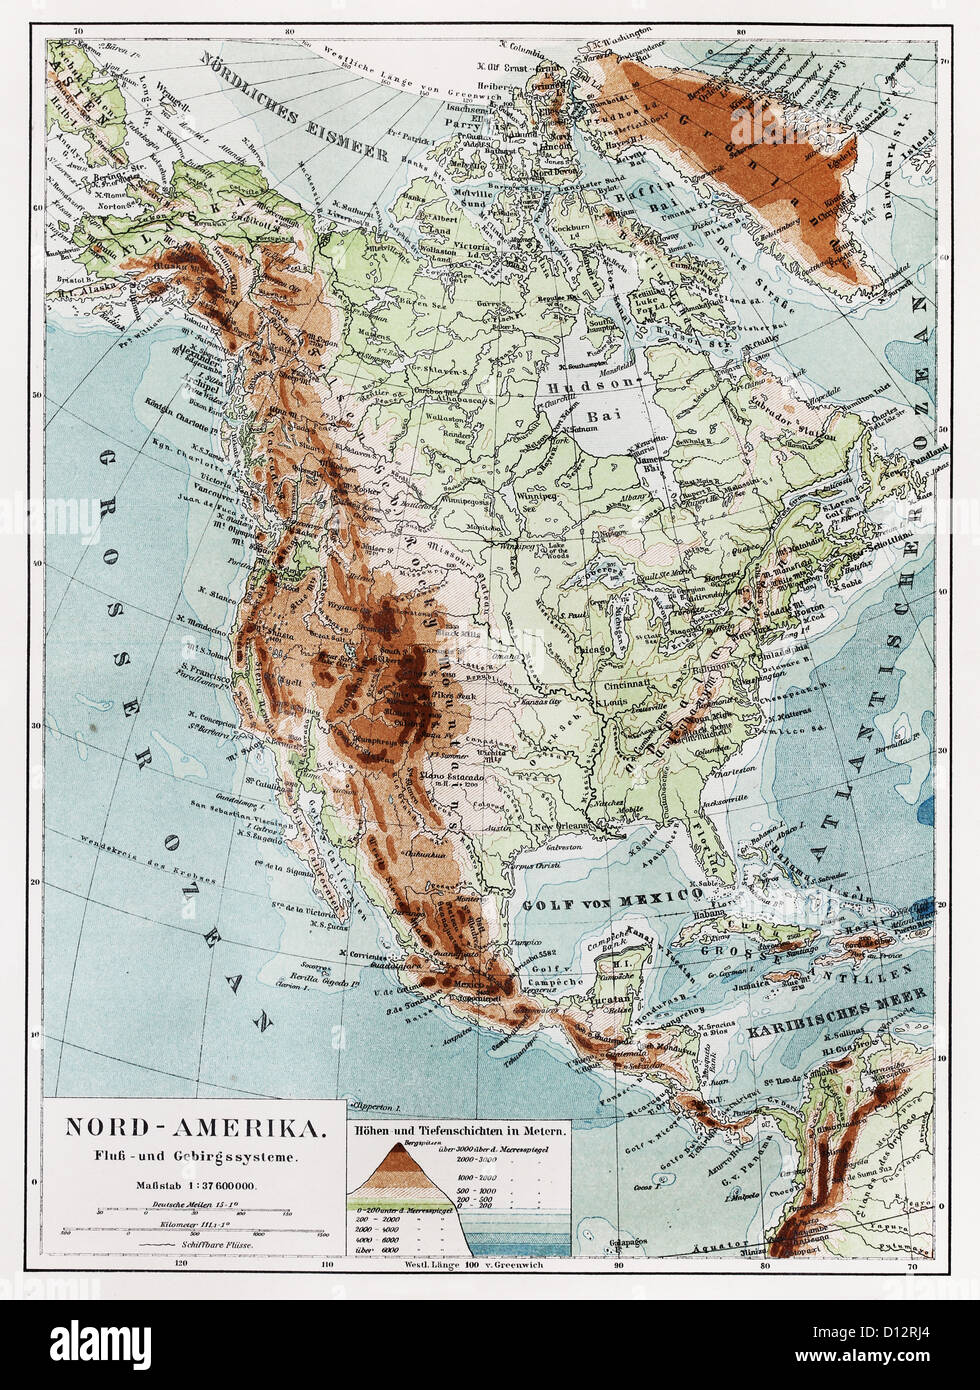 Geographical Map Of America.Geographical Vintage Map Of North America Continent At The End Of